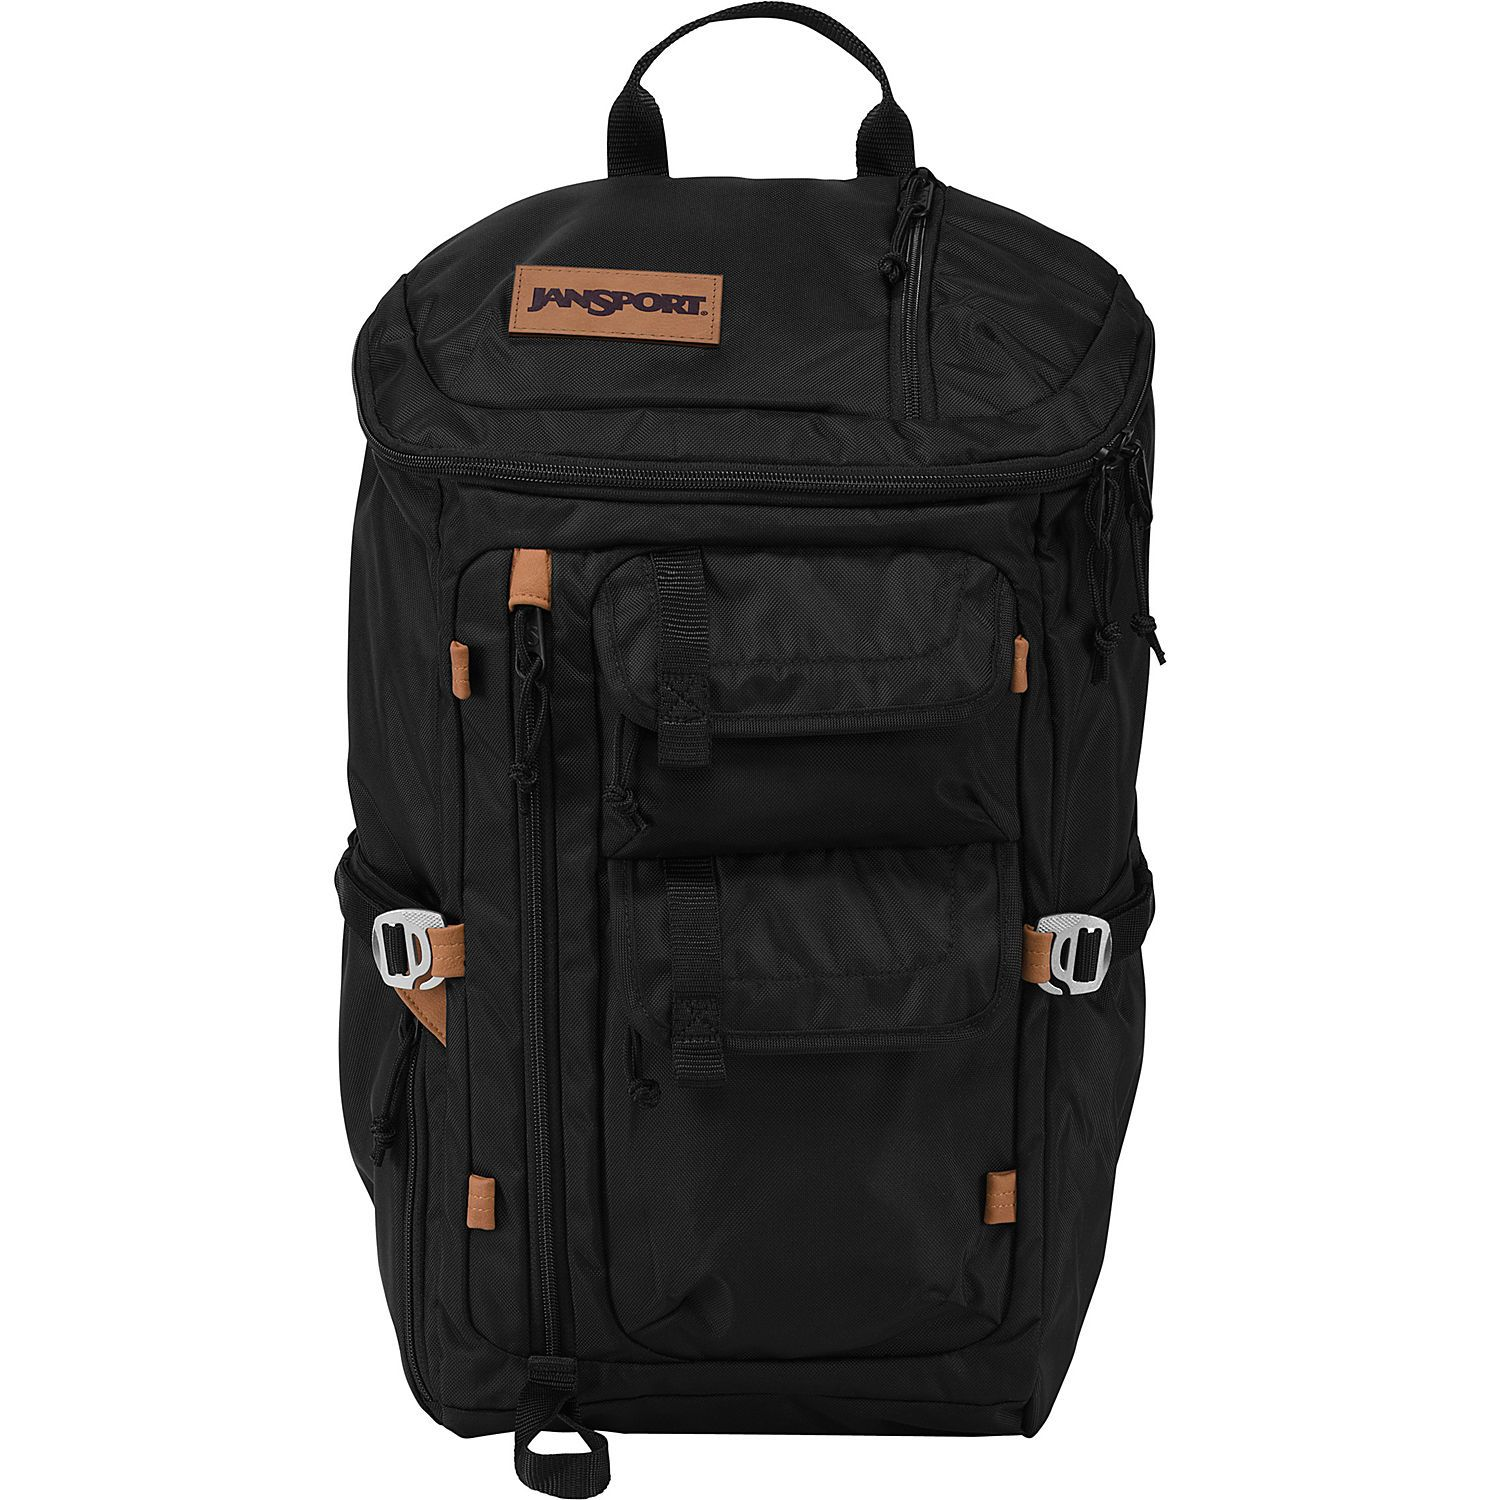 Watchtower Laptop Backpack - 15